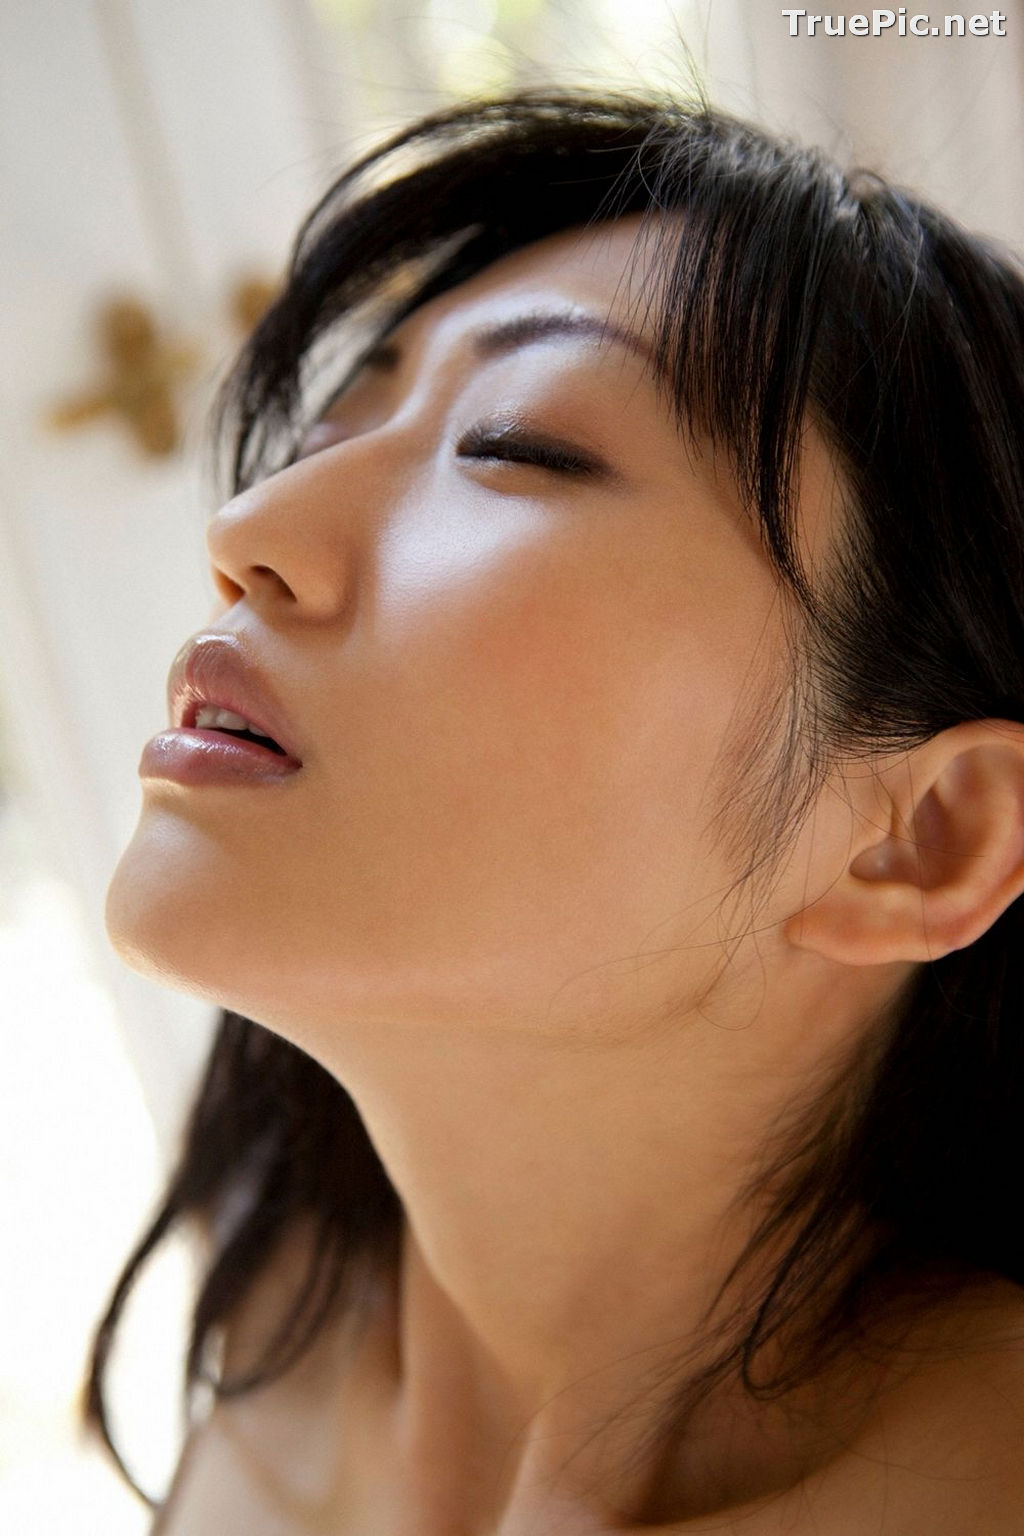 Image [YS Web] Vol.525 - Japanese Actress and Gravure Idol - Mitsu Dan - TruePic.net - Picture-6